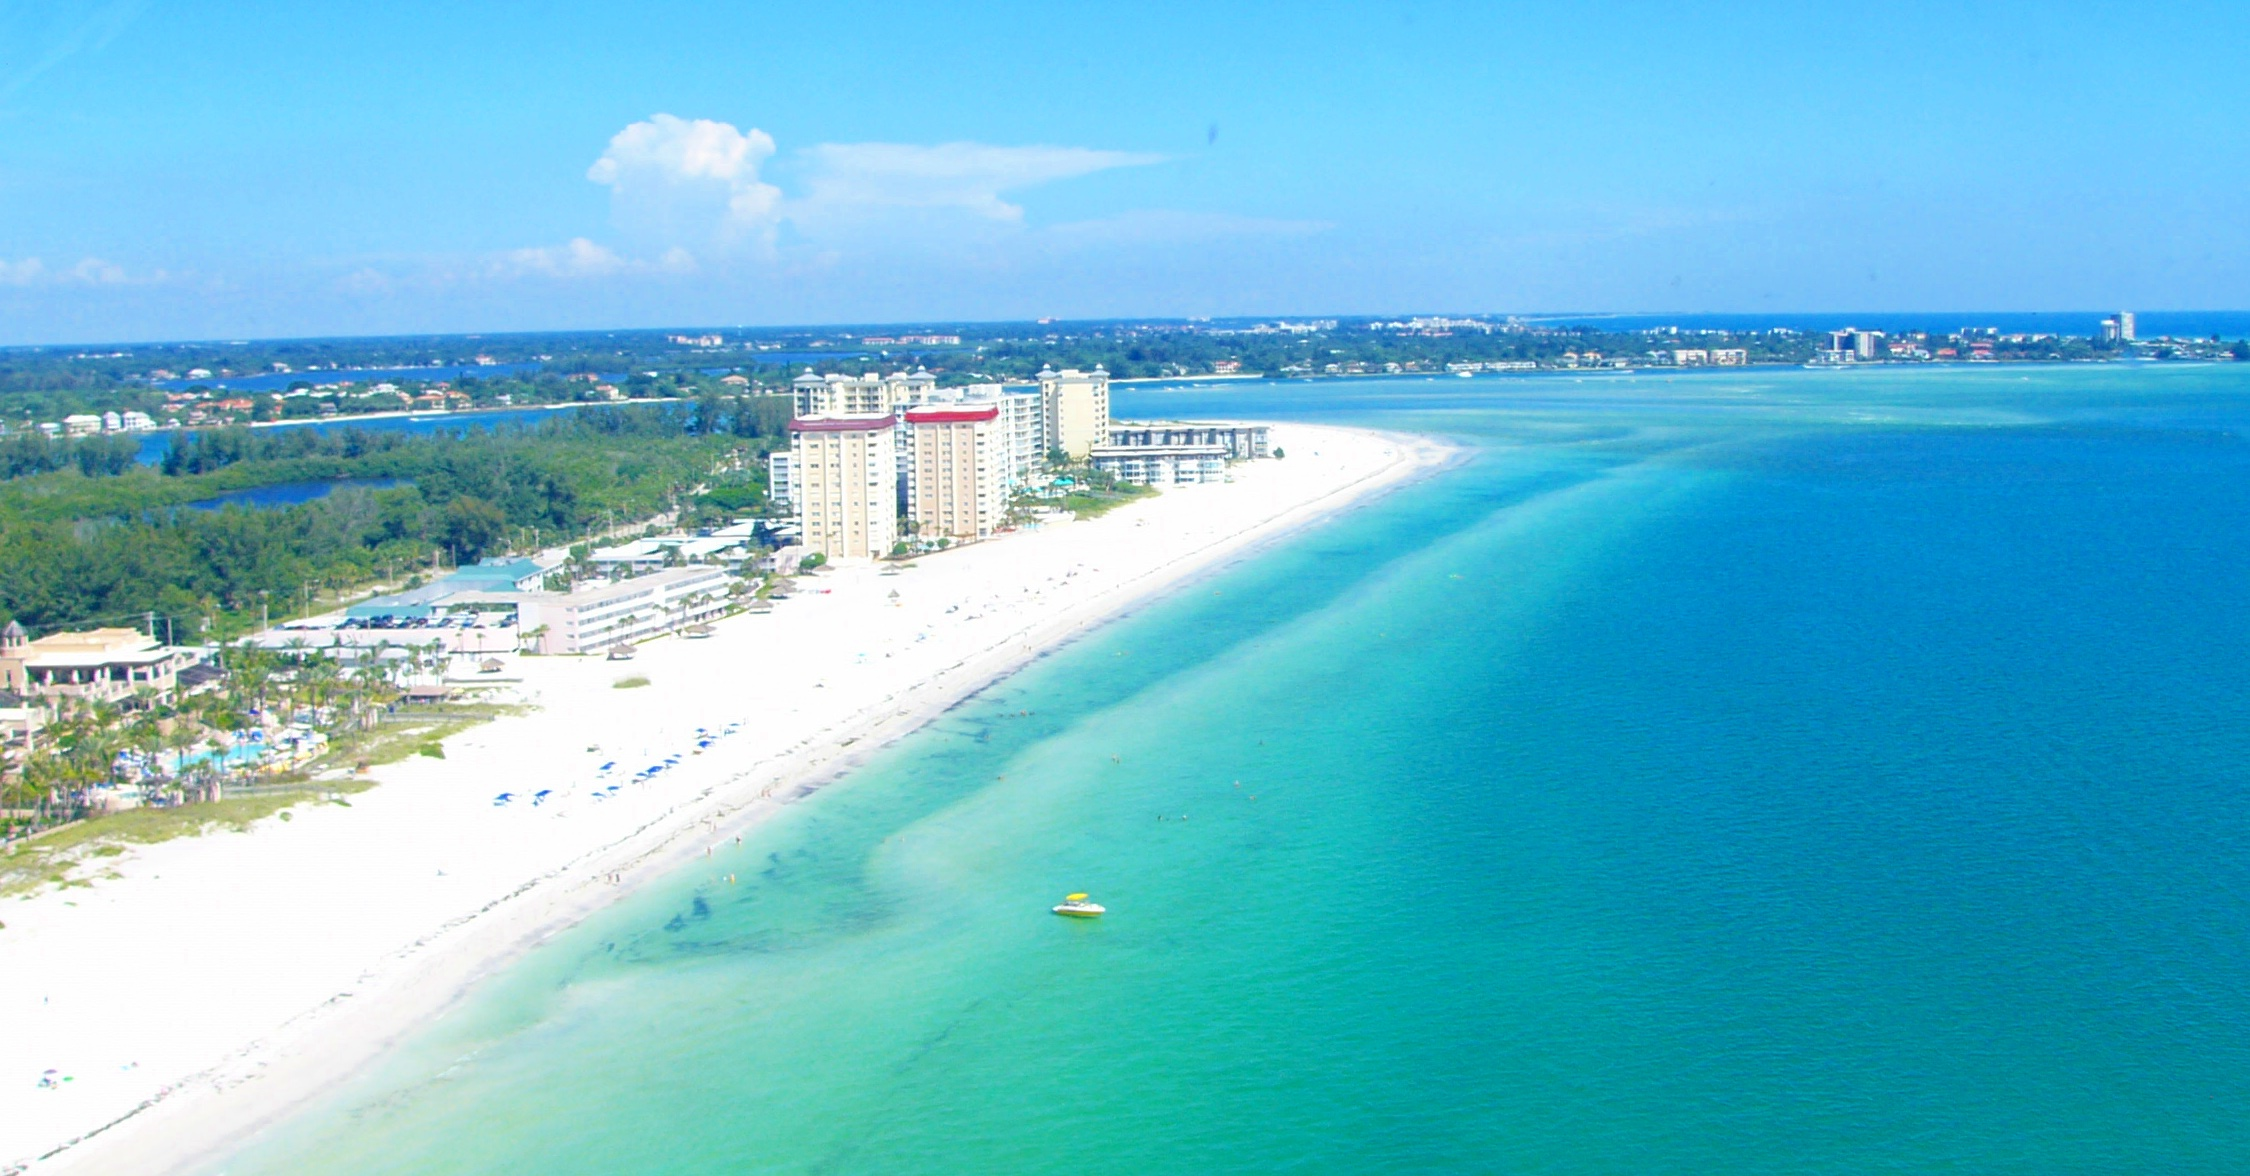 Beach Resort Sarasota Fl Resorts On The Tripadvisor Tropical Top